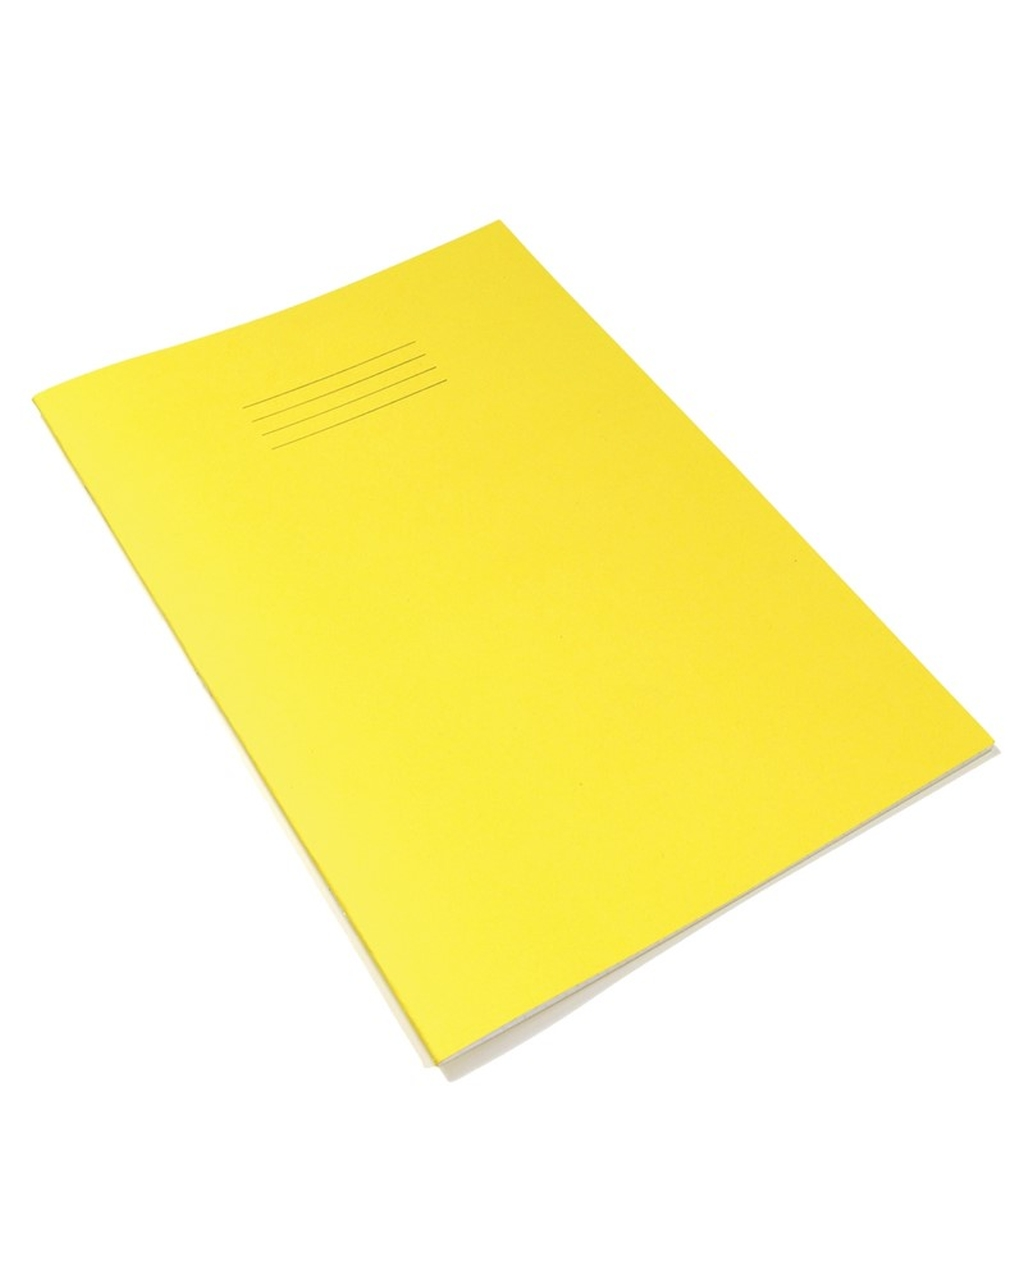 A4 Tinted Ex Books 10mm Square Cream Paper, Yellow Cover